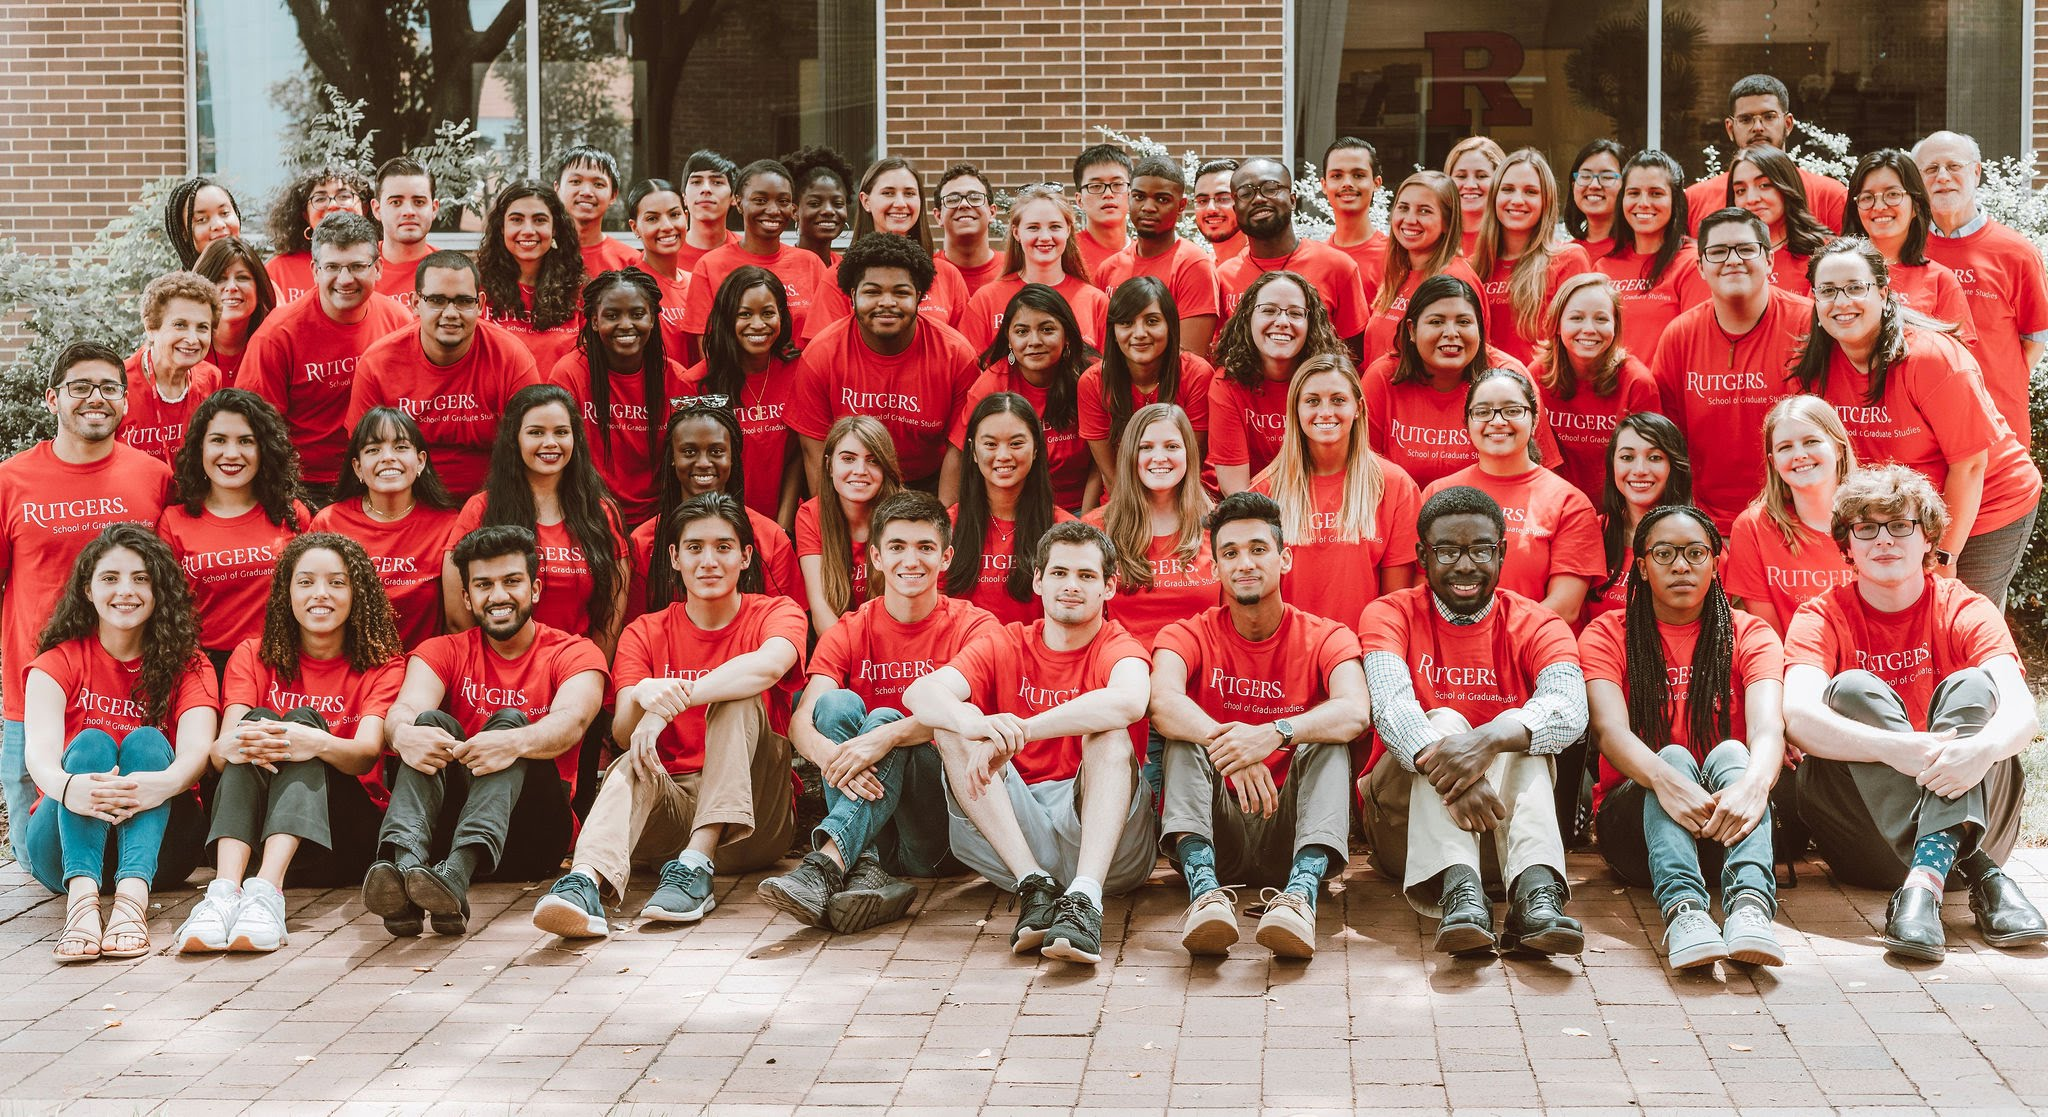 1 RISE 2019 group in red shirts